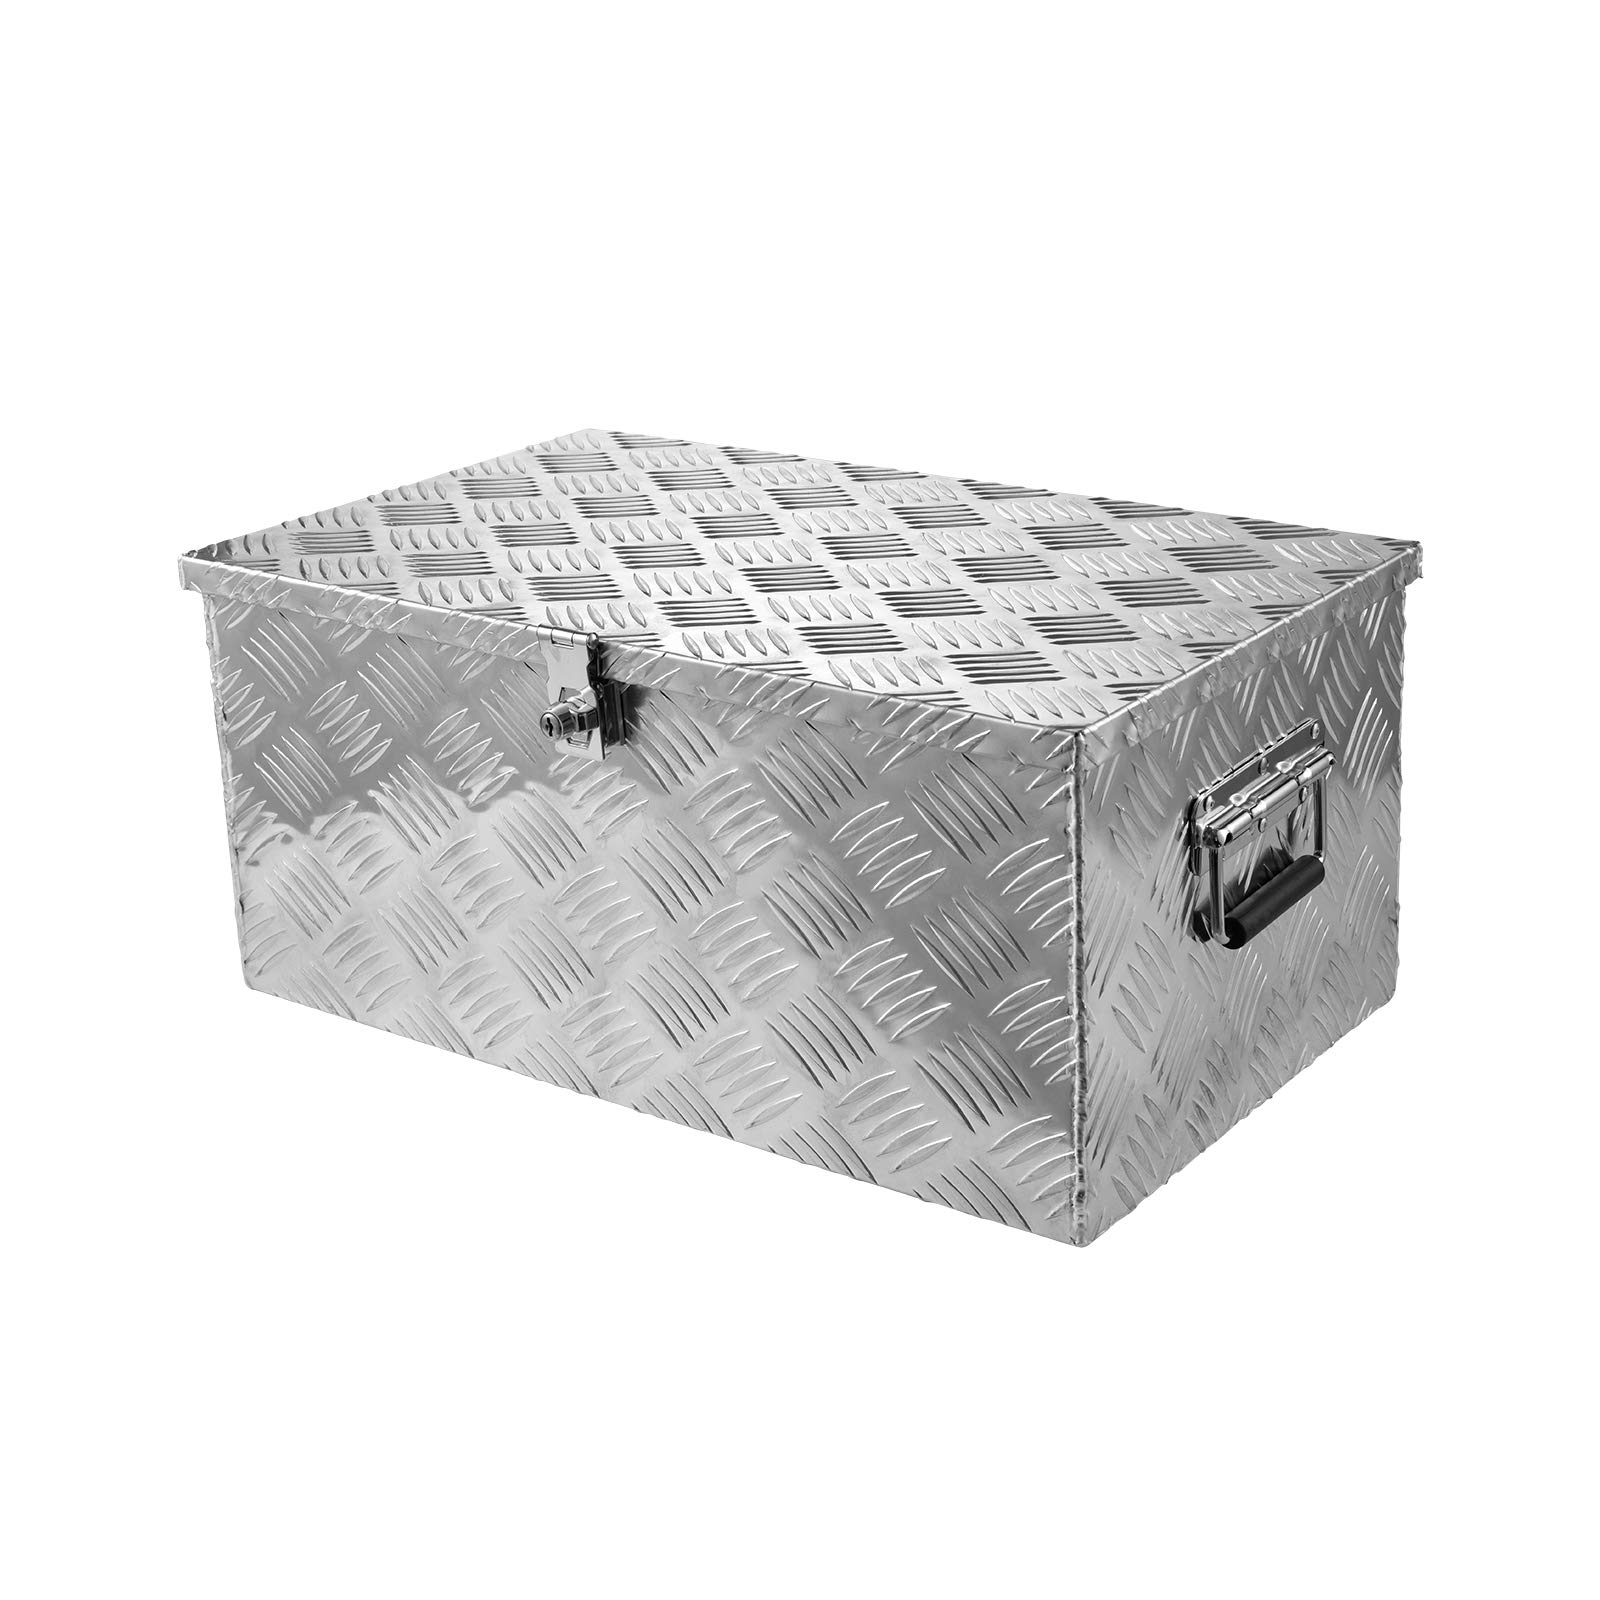 Aluminum Trailer Tool Box, Storage Toolboxes Truck Bed Toolboxes Organizer Side Handle, Lock w/ 2 Keys, Silver (30 inch White)